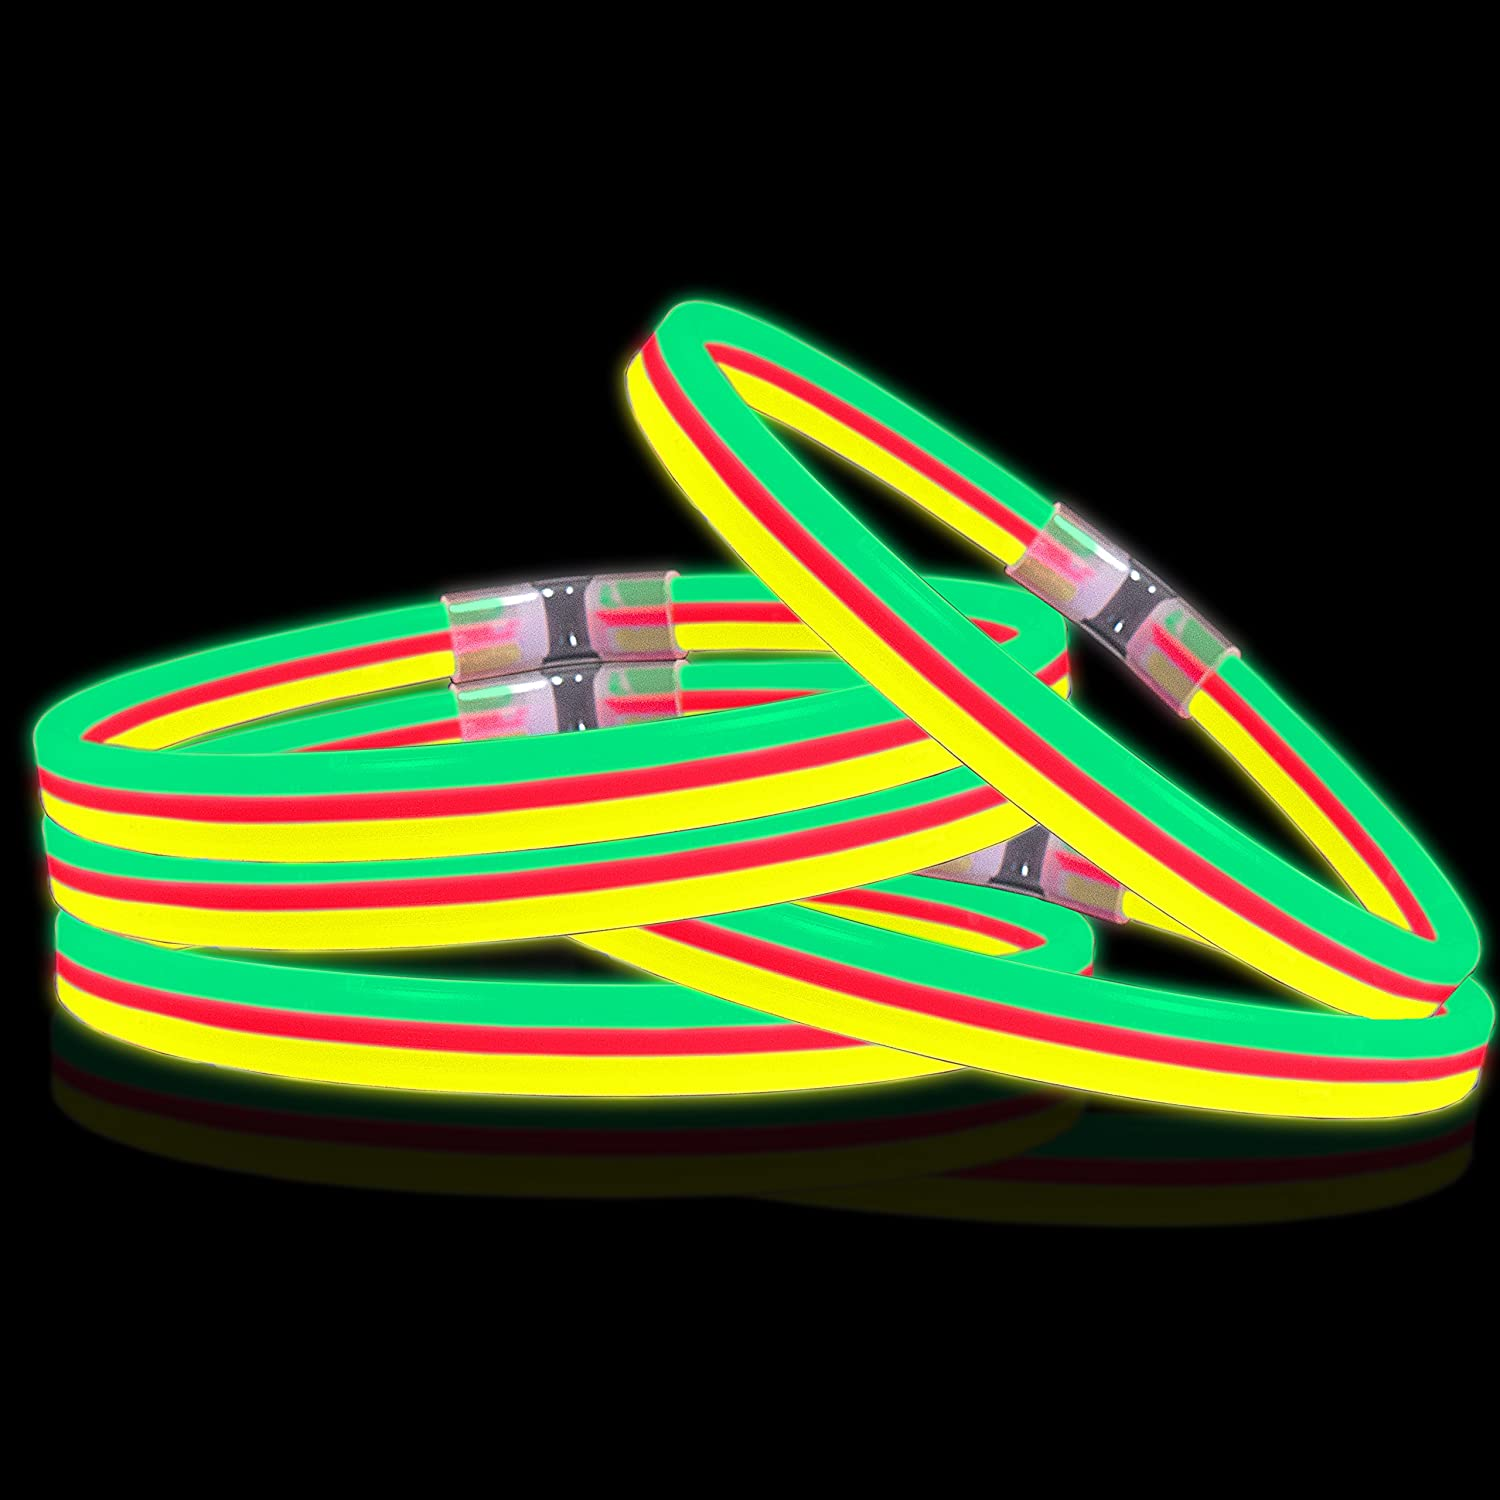 Lumistick Triple Thick Ultra Bright Festival Glow Stick Necklaces | Kid Safe Non Toxic Light Up Glowstick Party Pack | Available in Color Varieties | Lasts up to 12 Hours Green Yellow Red 25